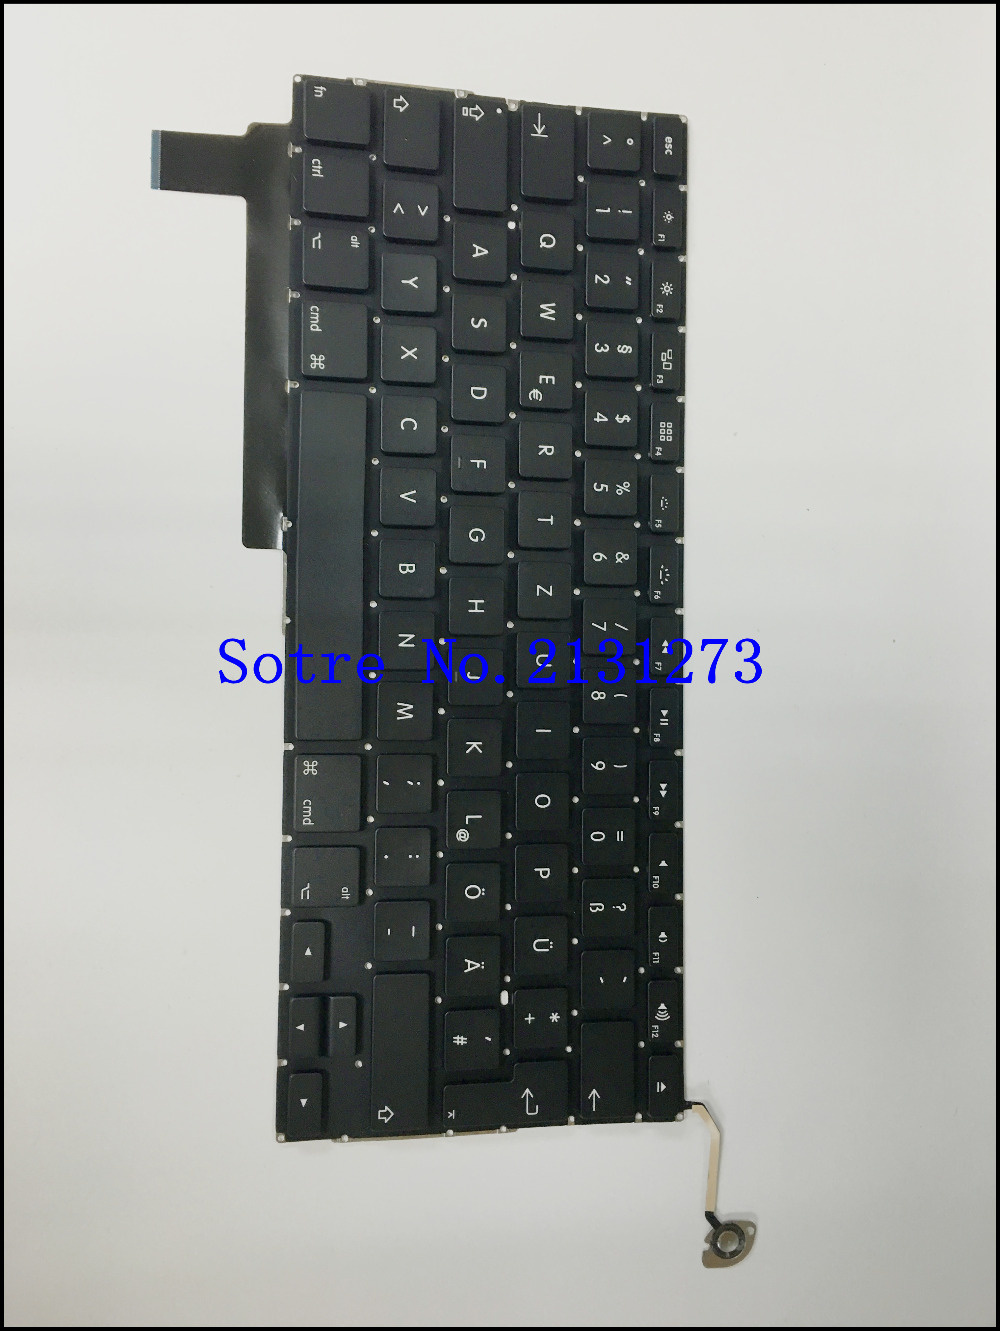 Laptop German Keyboard New For Apple Macbook 15.4inch a1286 2009 2010 2011 2012 year+Free shoipping(China (Mainland))